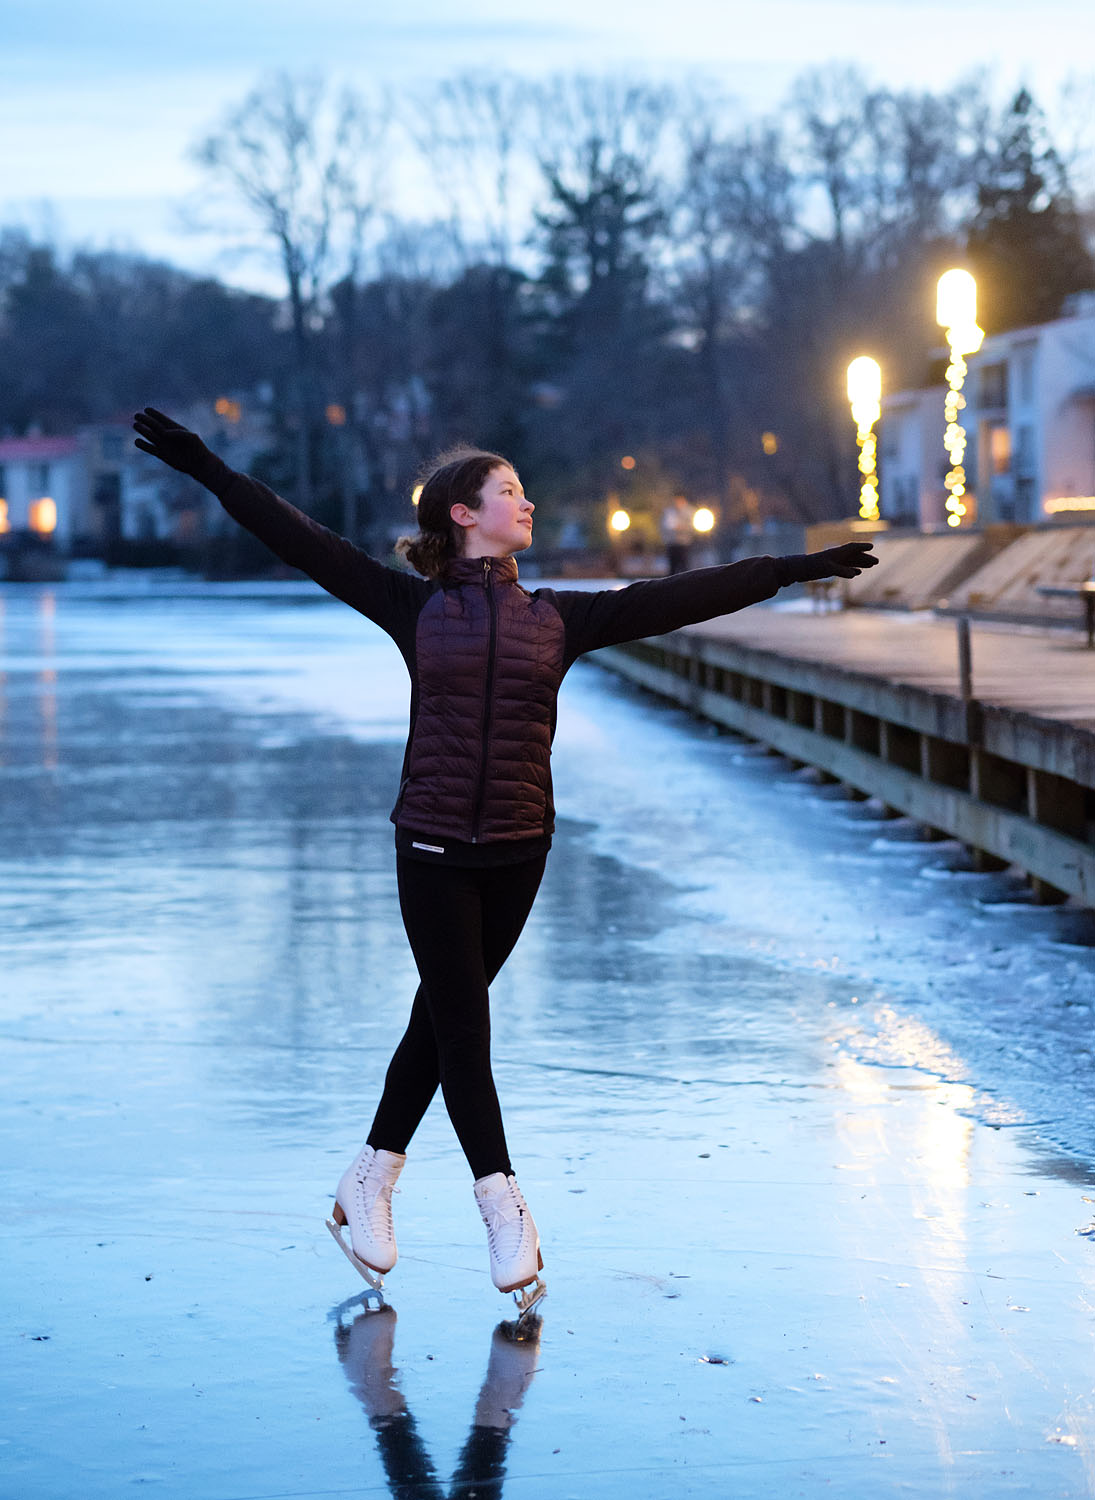 Ice skater on frozen Lake Anne in Reston, Virginia